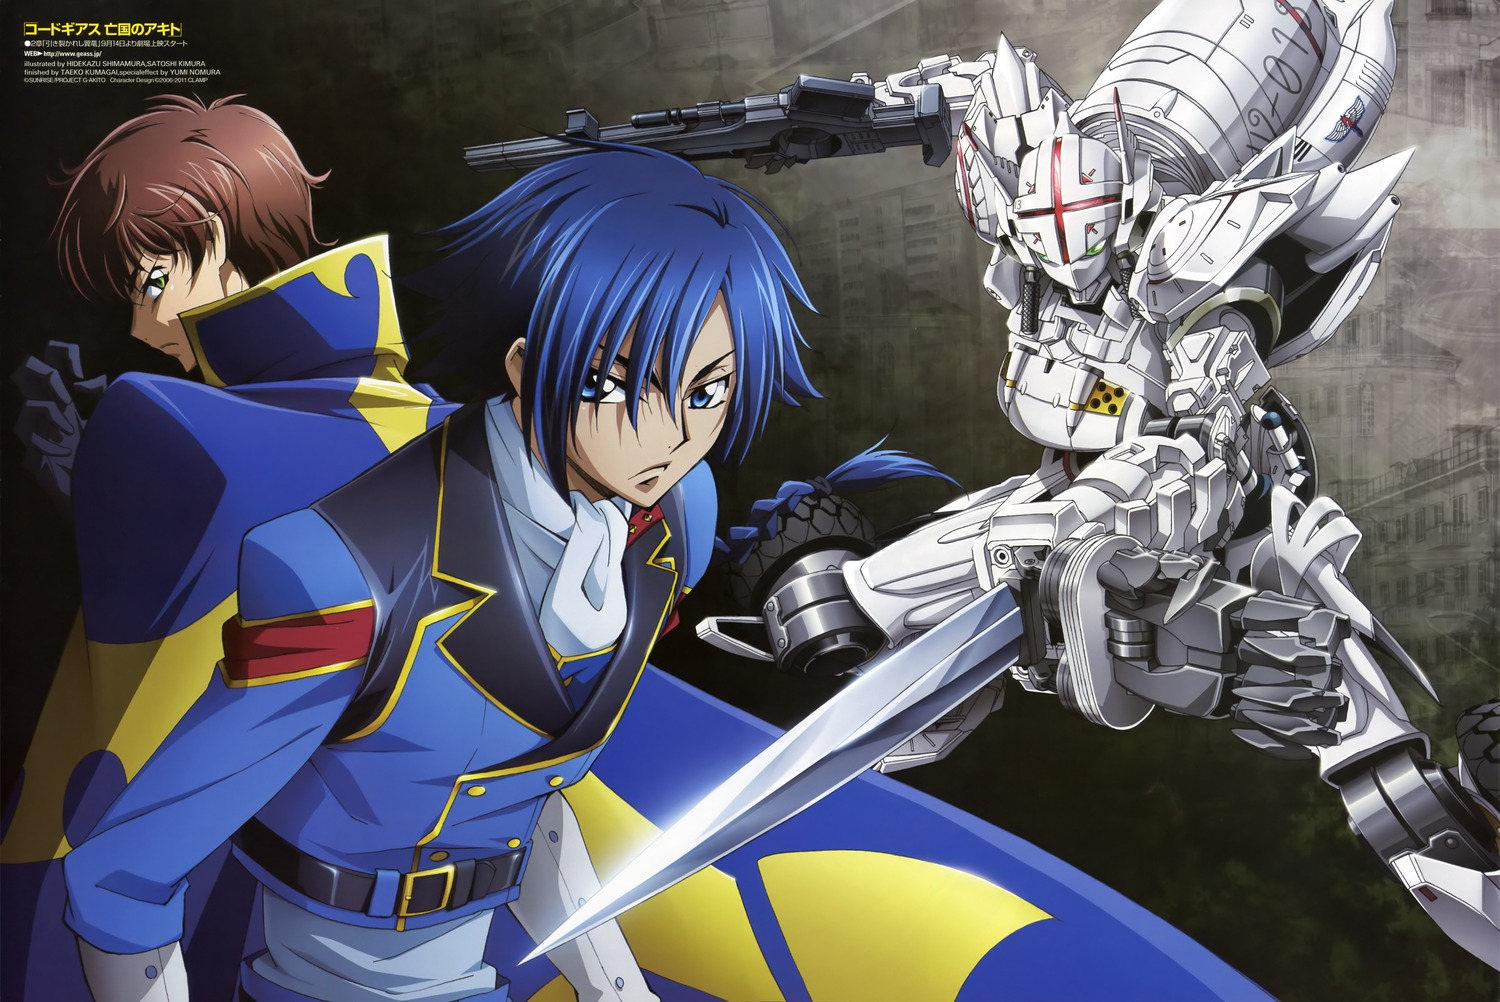 Code Geass Akito The Exiled